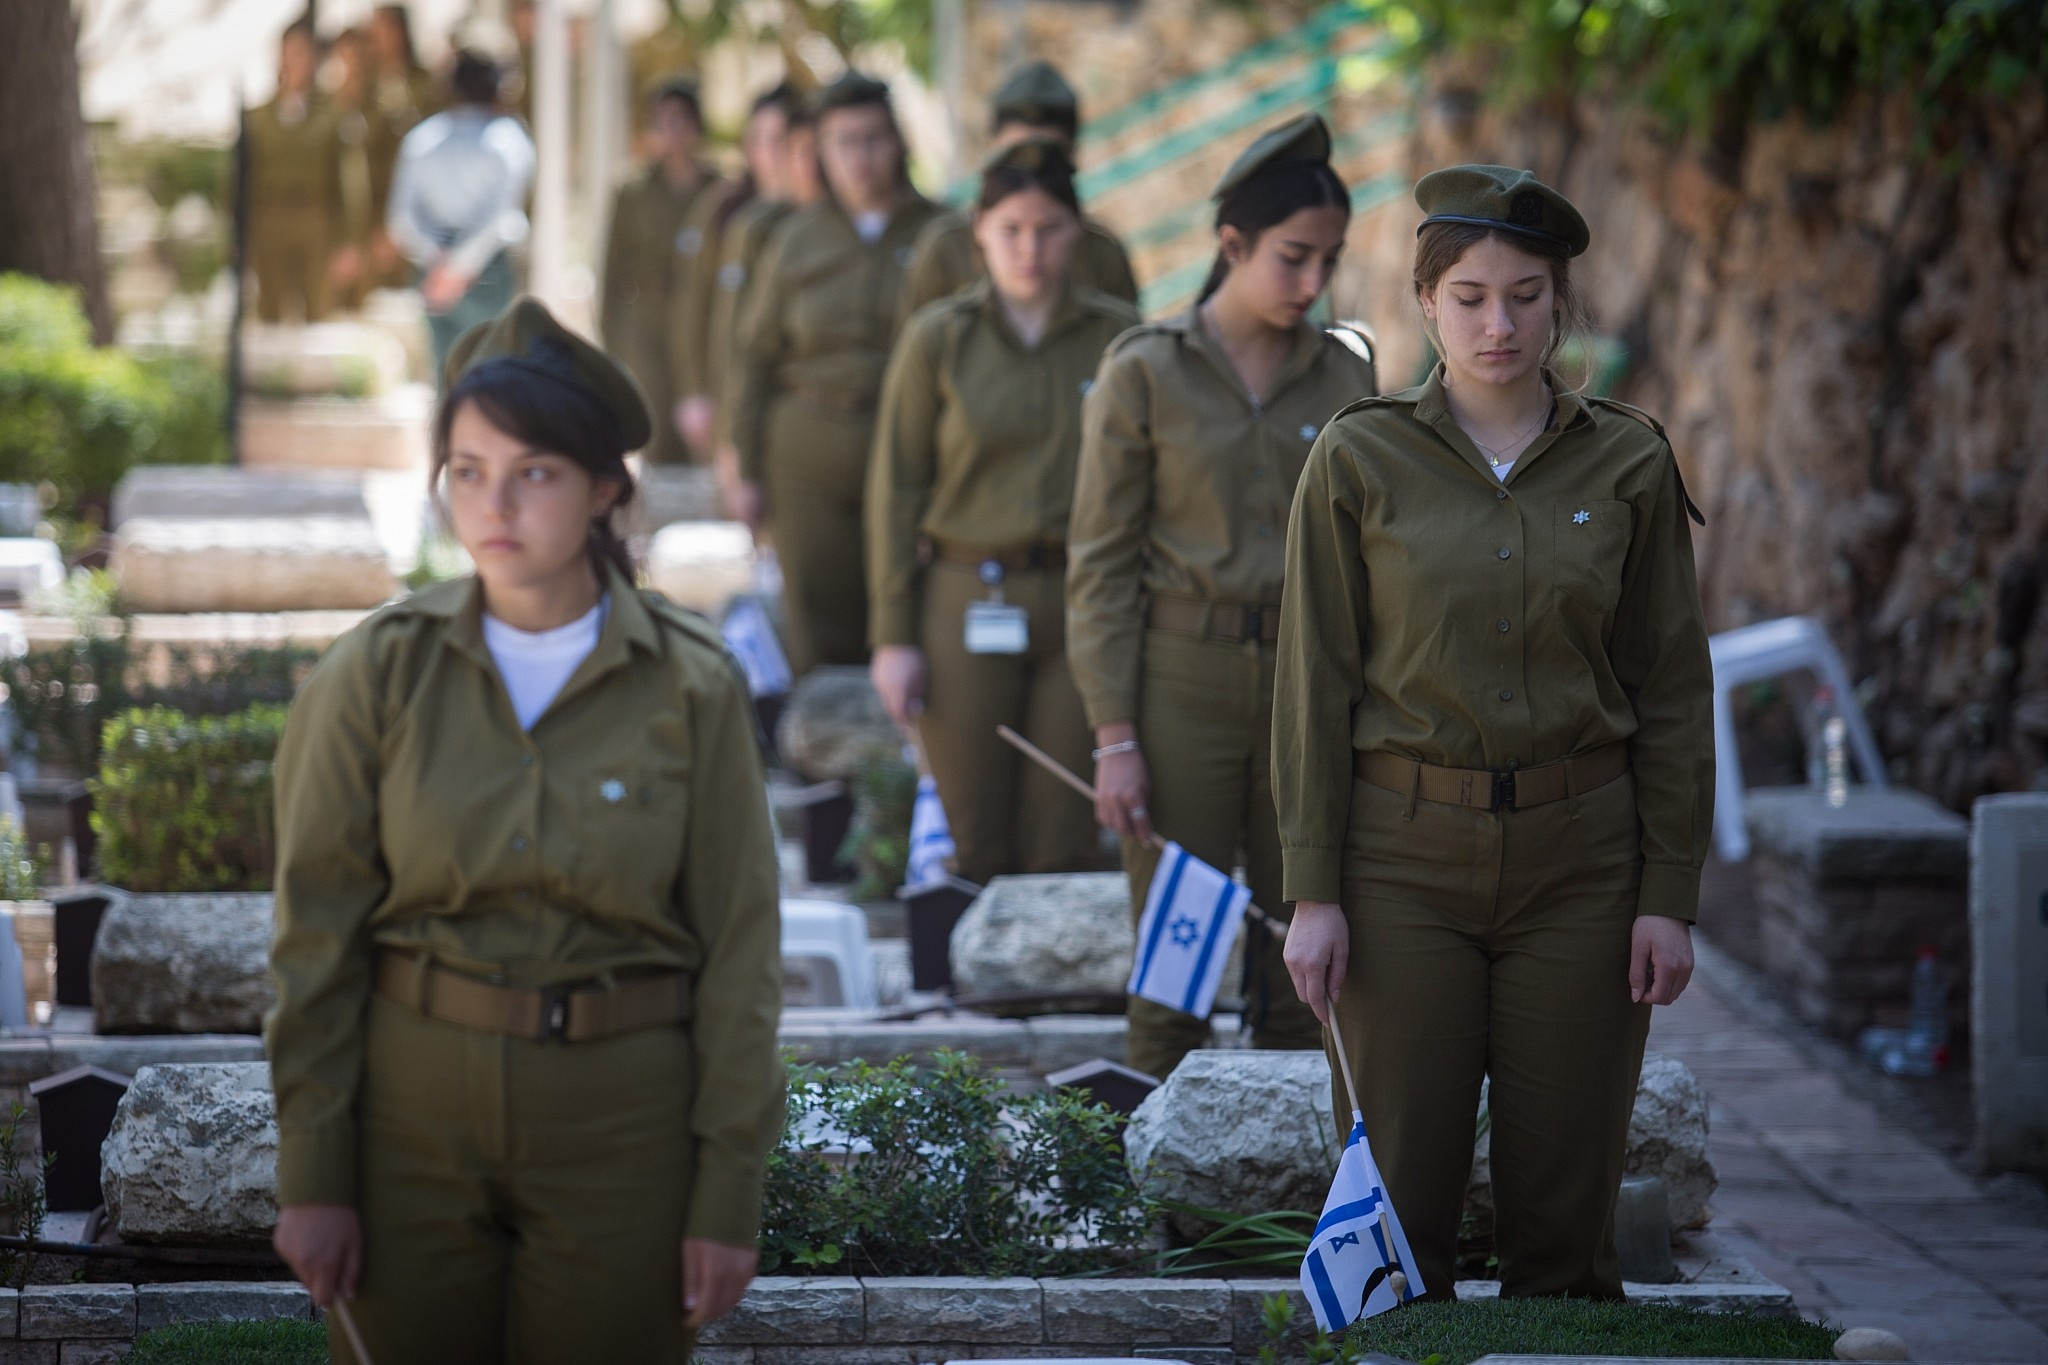 Israelis and Palestinians hold controversial alternative Memorial Day ceremony